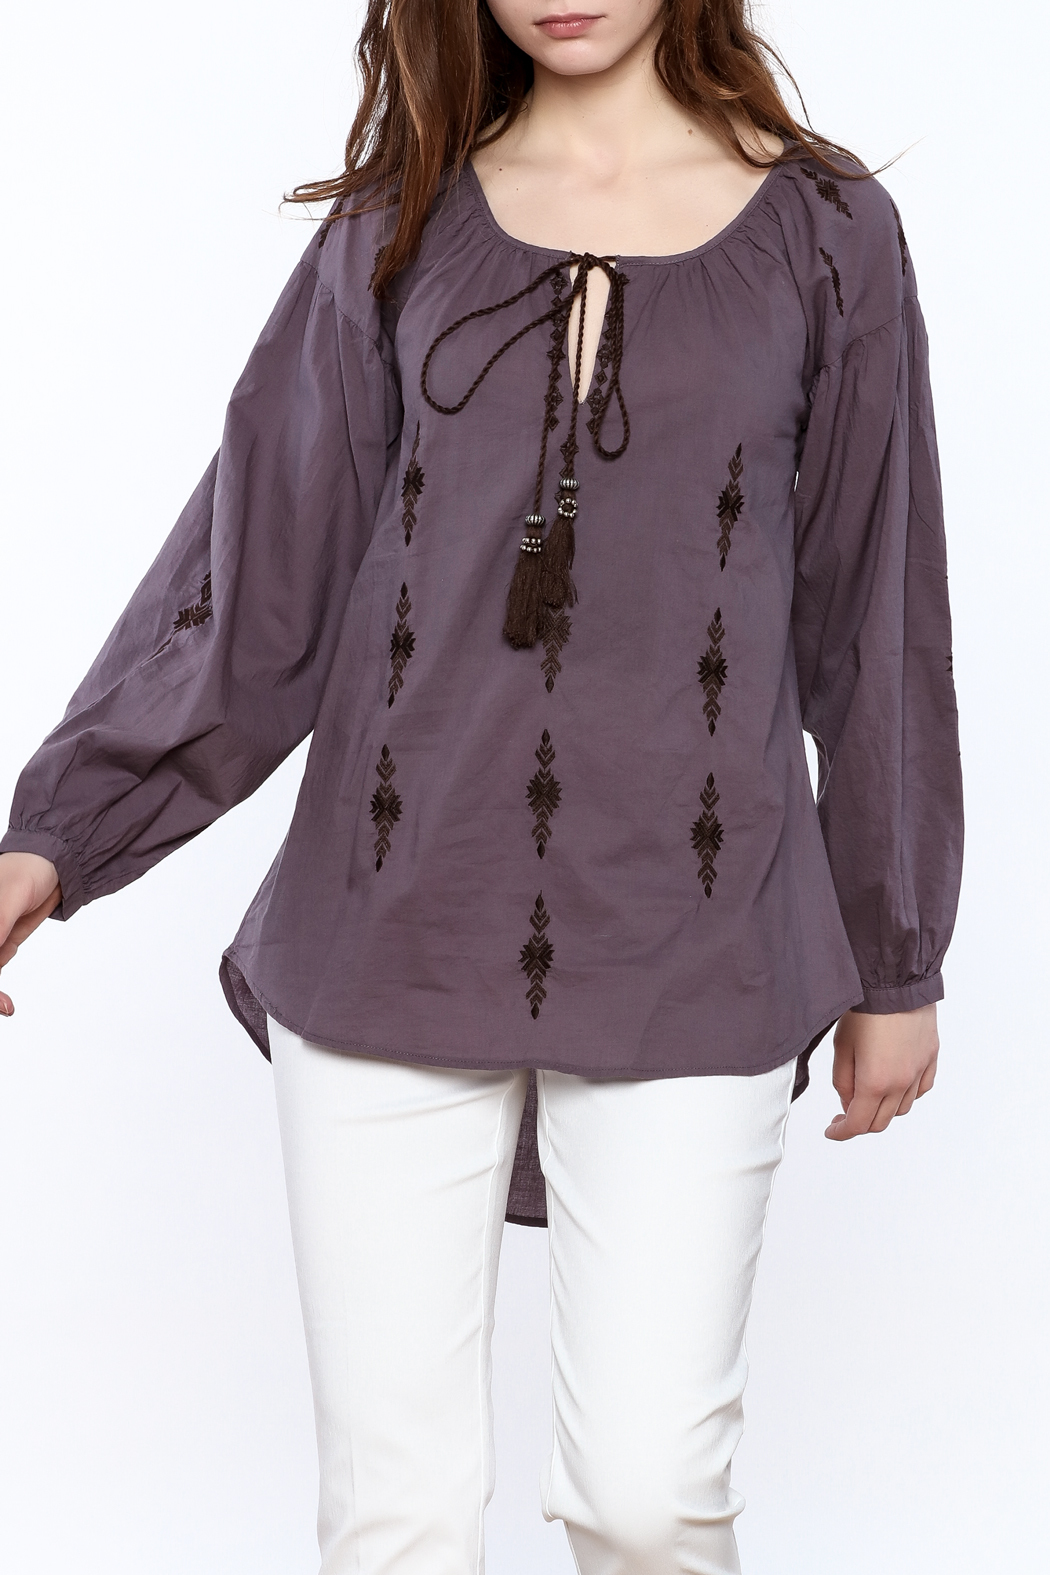 Esley Purple Long Sleeve Top - Front Cropped Image